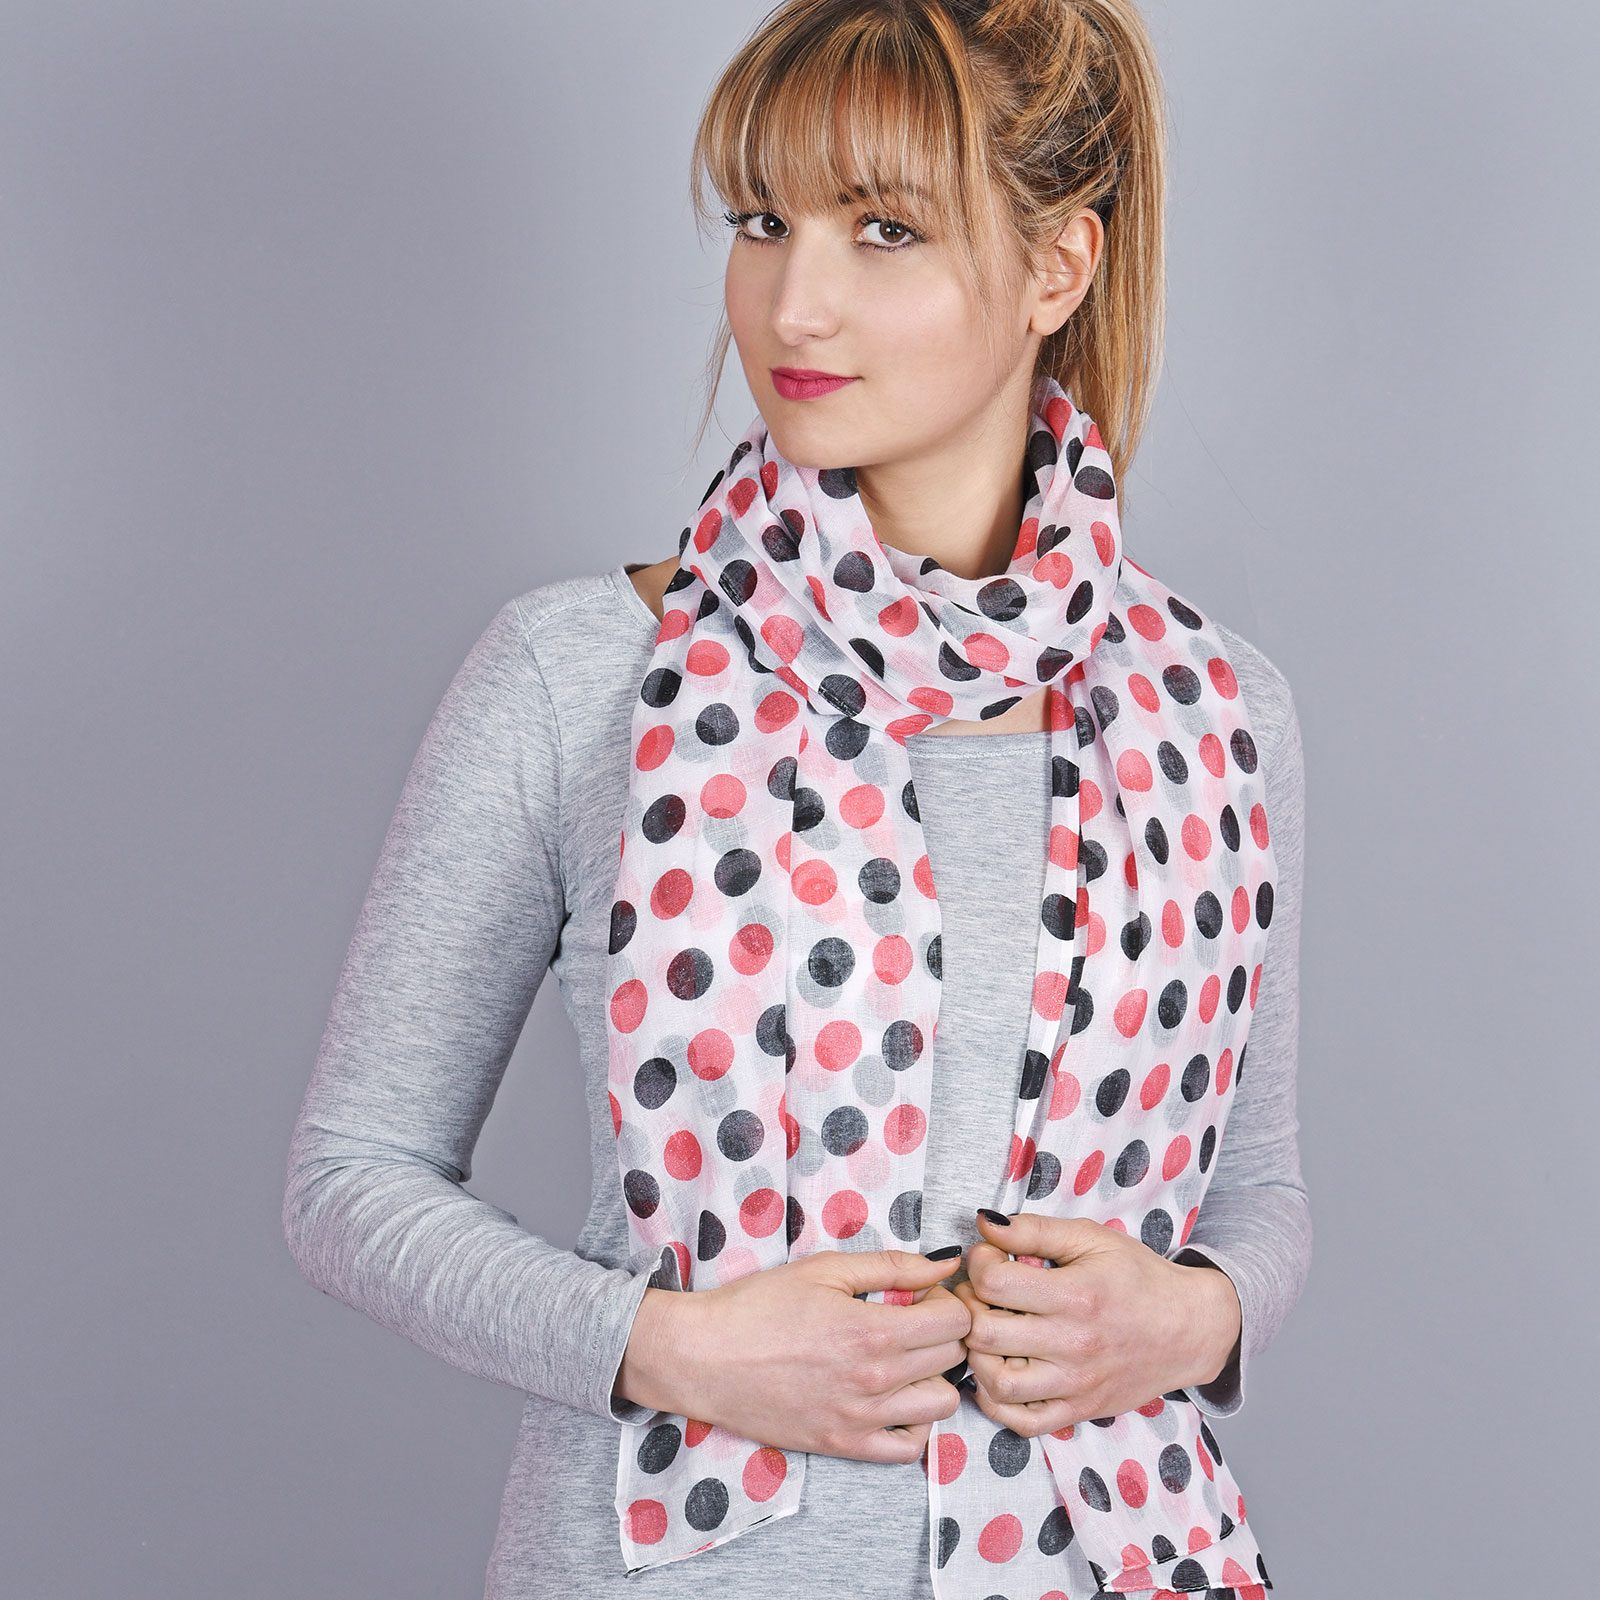 http://chantier.allee-du-foulard.fr/wp-content/uploads/2018/04/AT-04321-VF16-1-cheche-femme-pois-rose-1600x1600.jpg